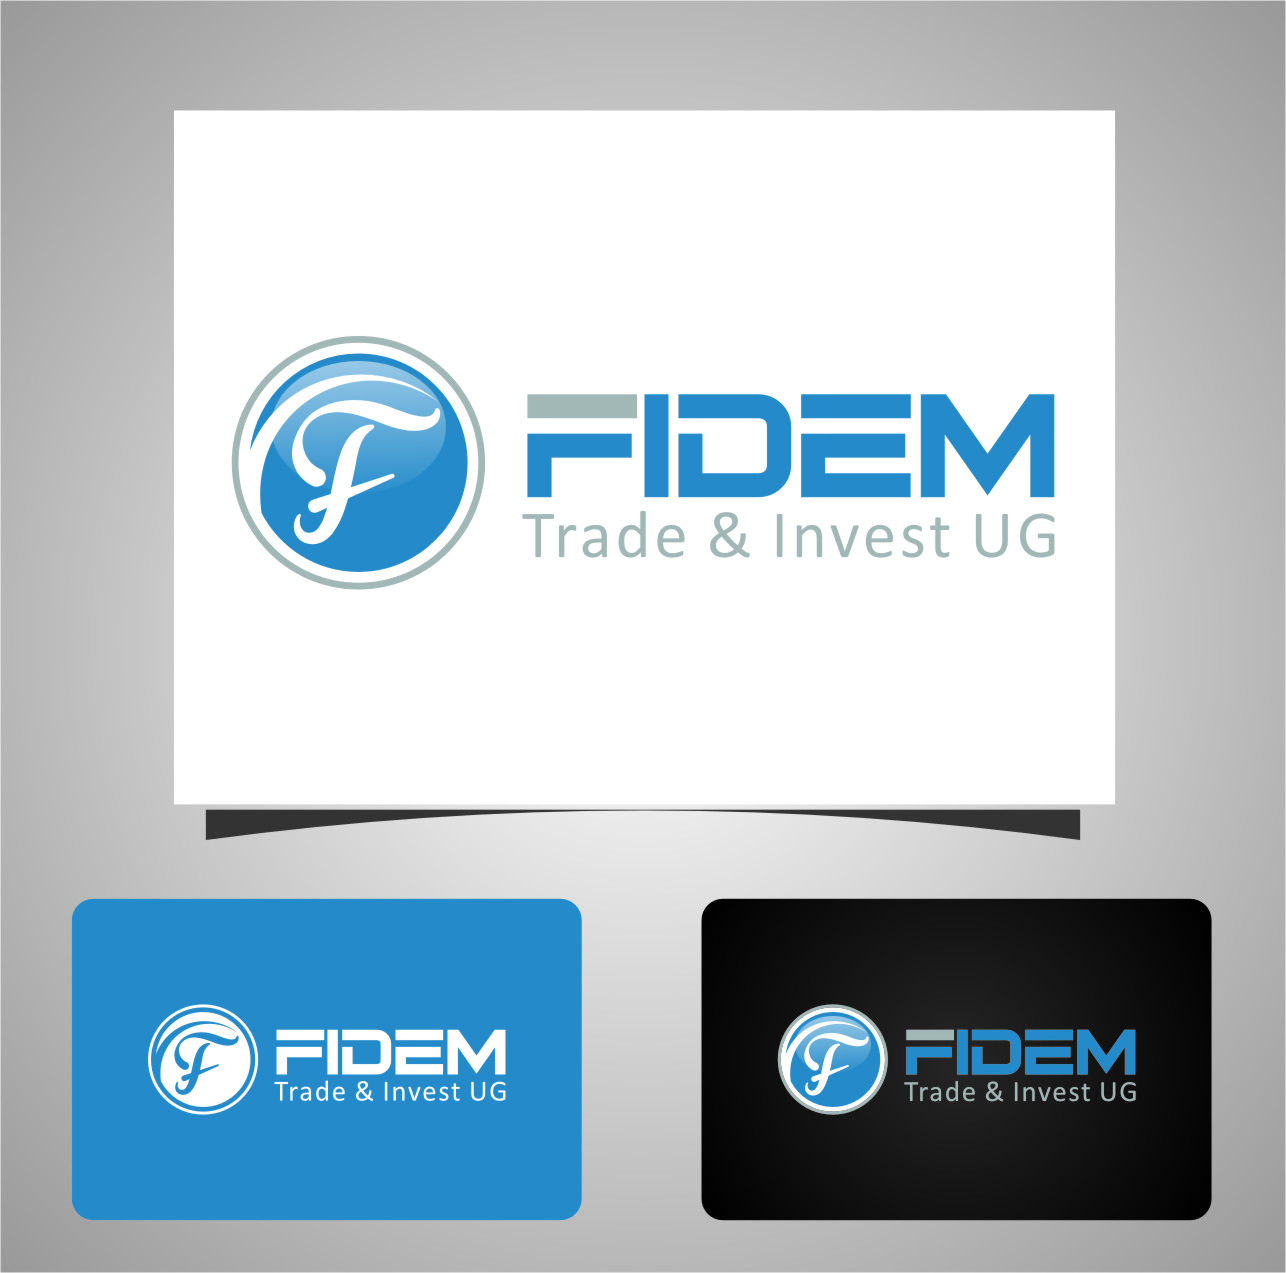 Logo Design by Ngepet_art - Entry No. 808 in the Logo Design Contest Professional Logo Design for FIDEM Trade & Invest UG.